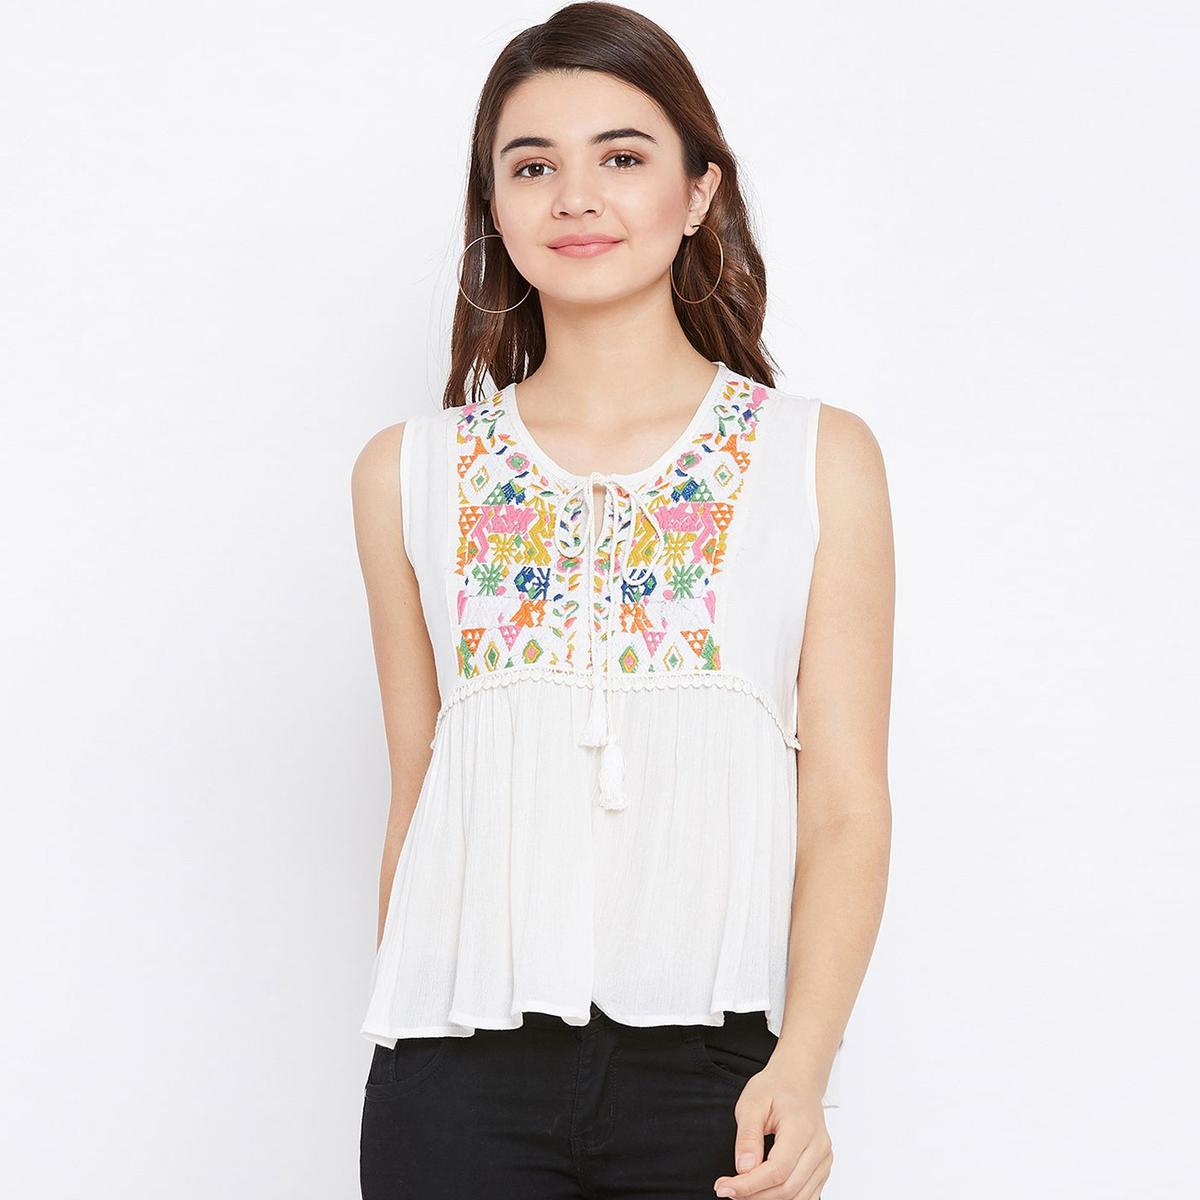 Sensational White Colored Casual Wear Embroidered Rayon Top